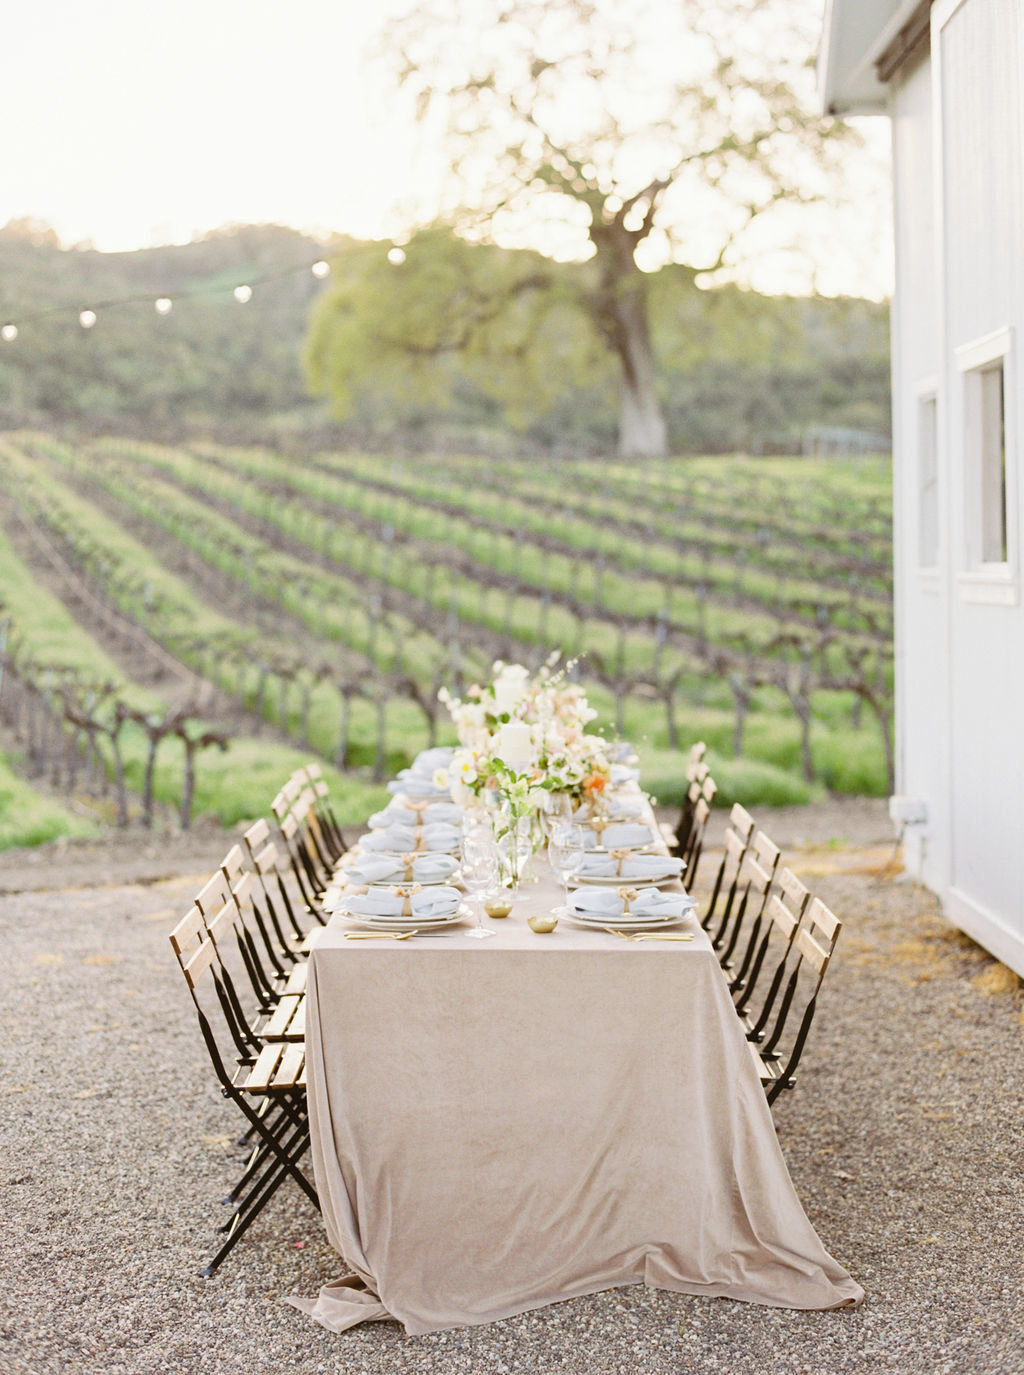 Hammersky-Vineyards-Wedding-by-San-Luis-Obispo-Wedding-Planner-Embark-Event-Design-18